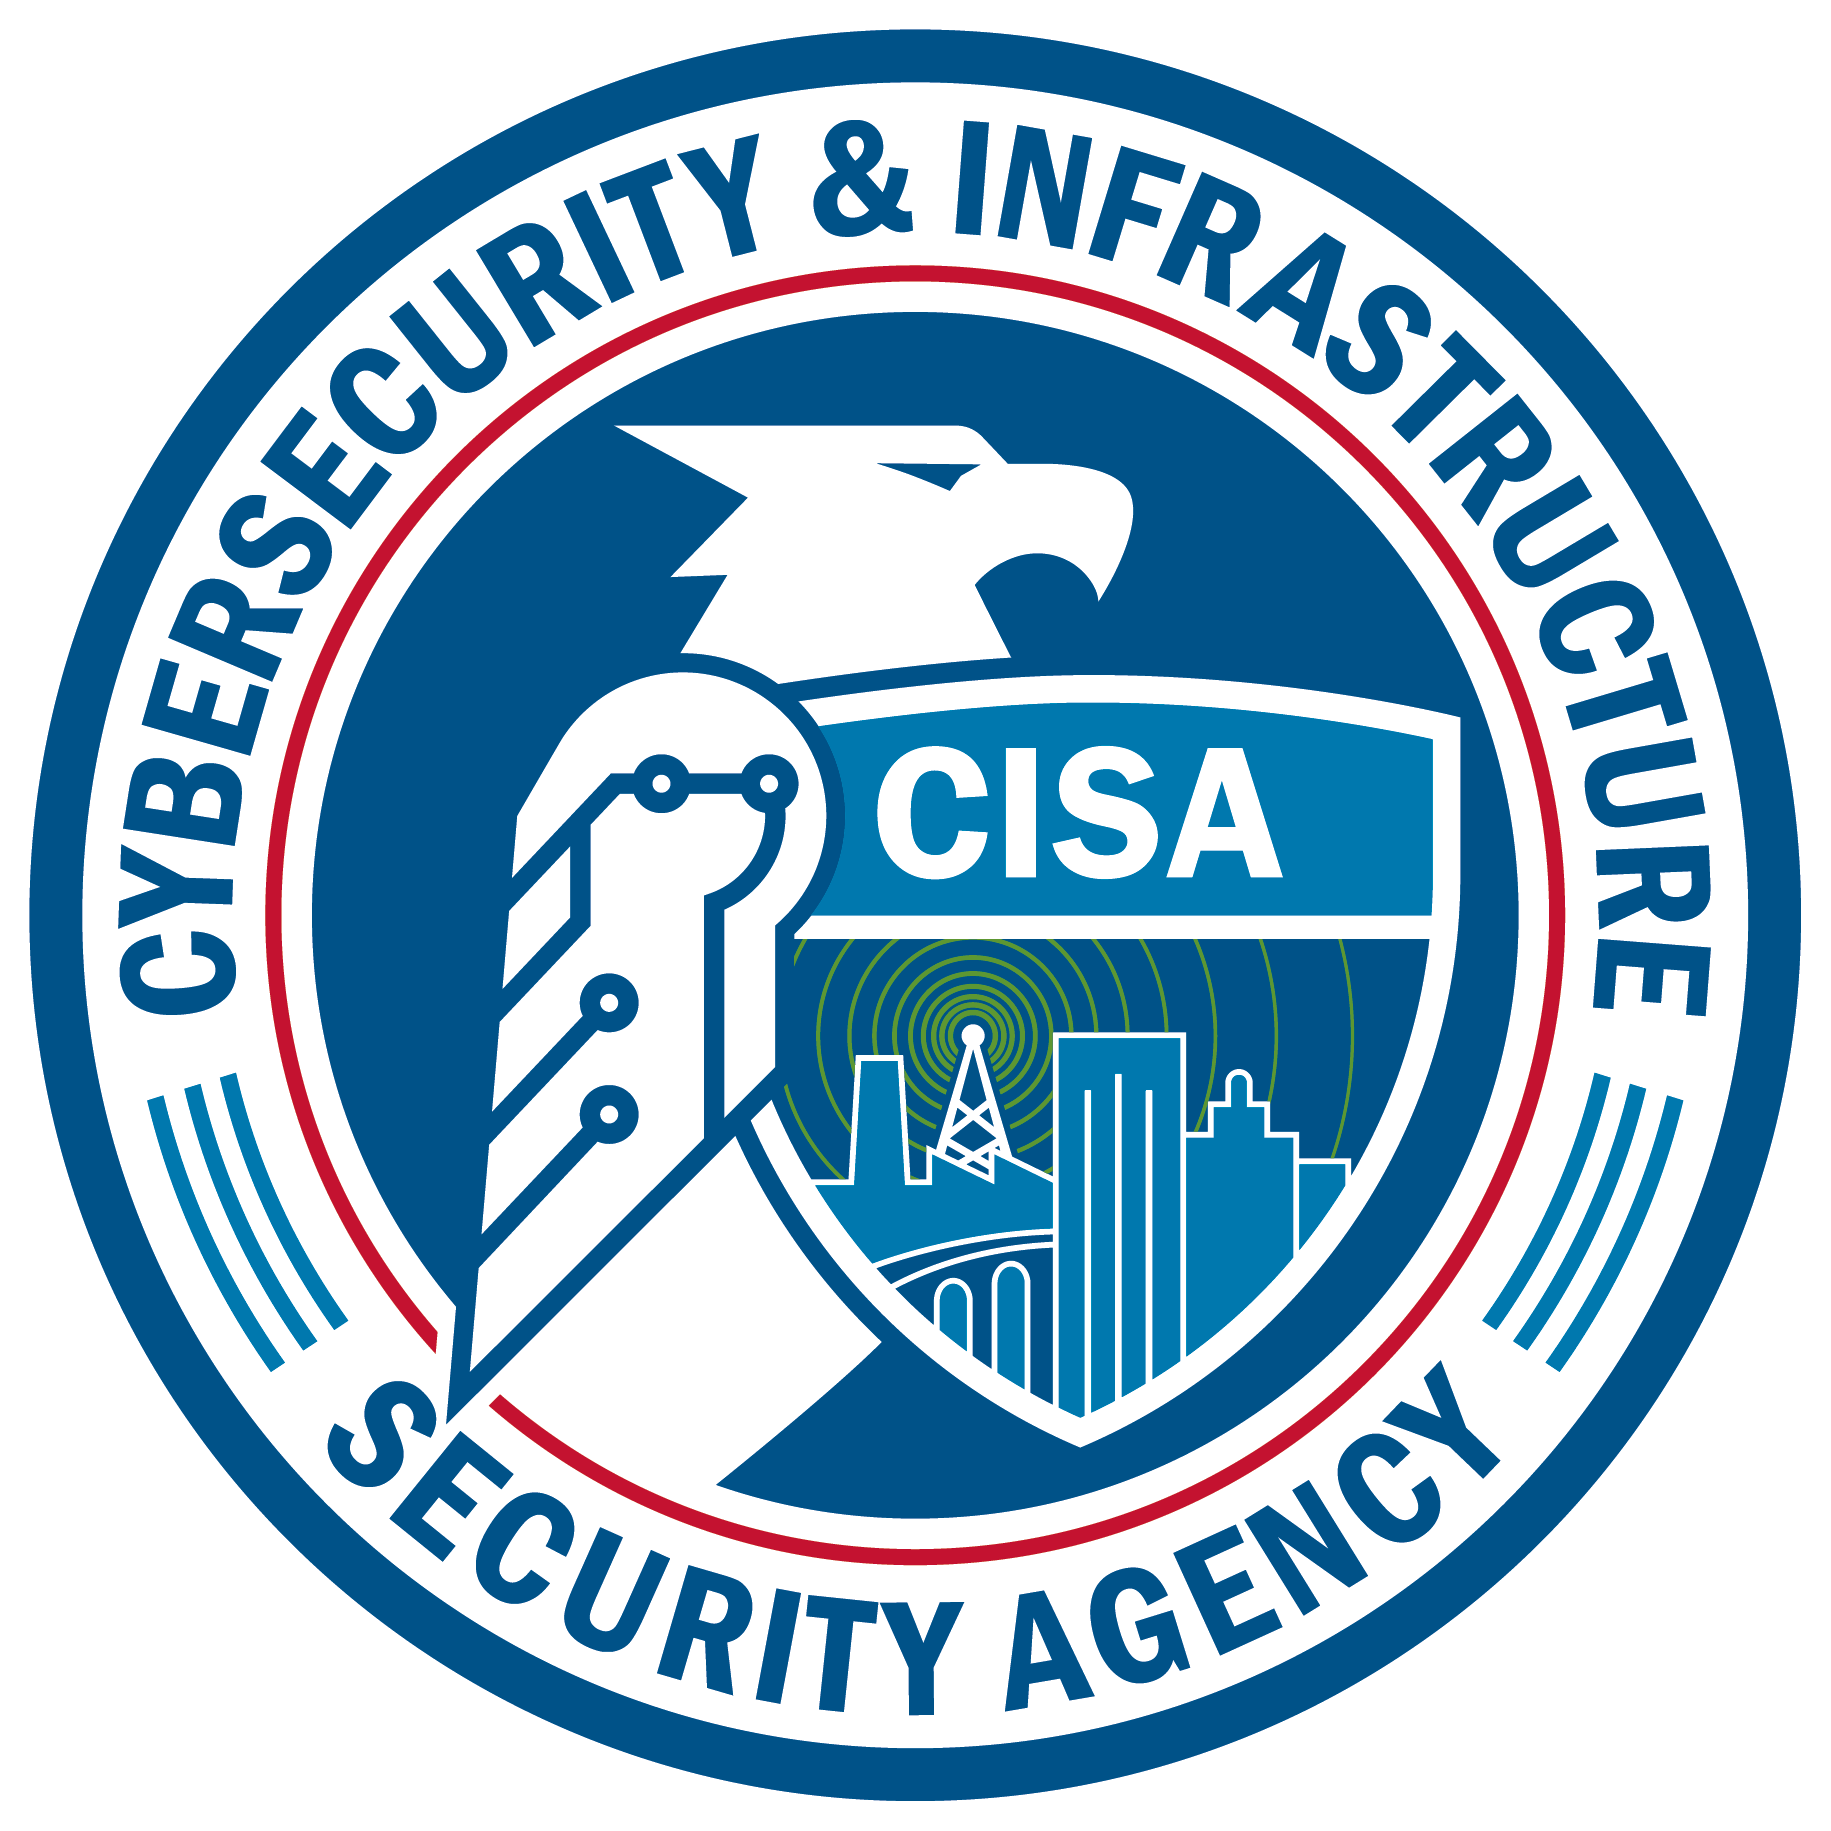 "•	The blue outer ring and the inner red ring indicate CISA's unity with DHS and a nod to our efforts to cut through government red tape, while the three blue lines in the outer ring represent the Agency's three congressionally mandated missions: cybersecurity, infrastructure security, and emergency communications.    •	The eagle faces to the right, signifying CISA's keen eye on the future and forward posture.    •	The center shield represents CISA's commitment to ""Defend Today, Secure Tomorrow,"" while the eagle's folded wings reinforce CISA's protection and defense of our nation.    •	The image includes wavelengths representing the emergency communications mission, which emanate from buildings that signify the infrastructure security mission, while the nodes in the eagle's arm indicate the cybersecurity mission.   •	The bridge represents the vital, two-way connection, communication, and collaboration between the public and private sectors, which is so key to CISA's mission success."